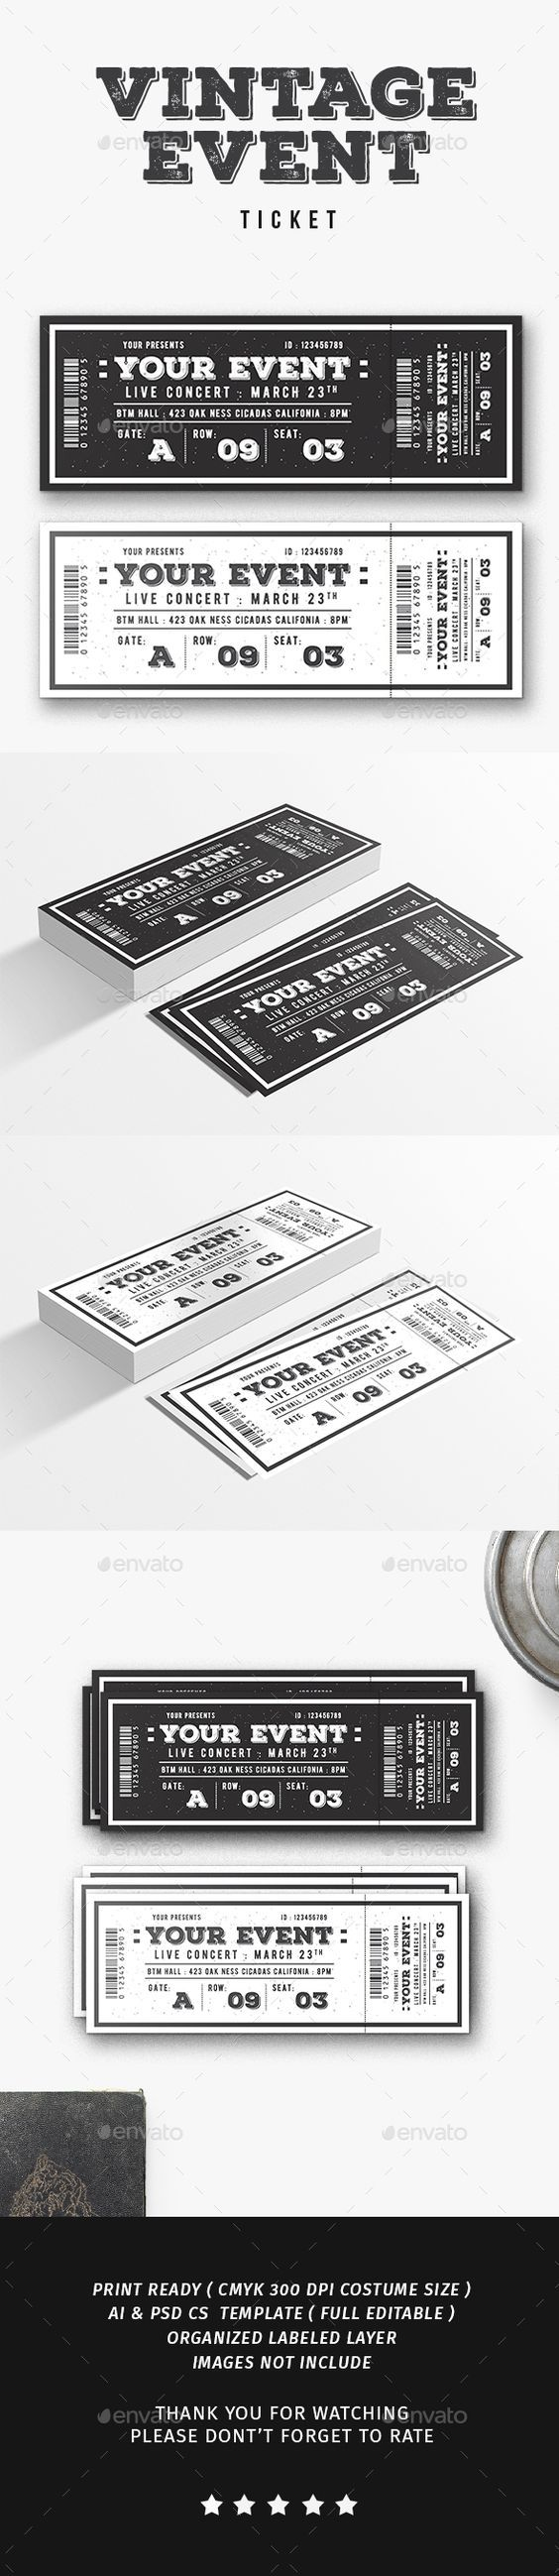 Concert Ticket Template Free Download Captivating Vintage Event Ticket  Event Ticket